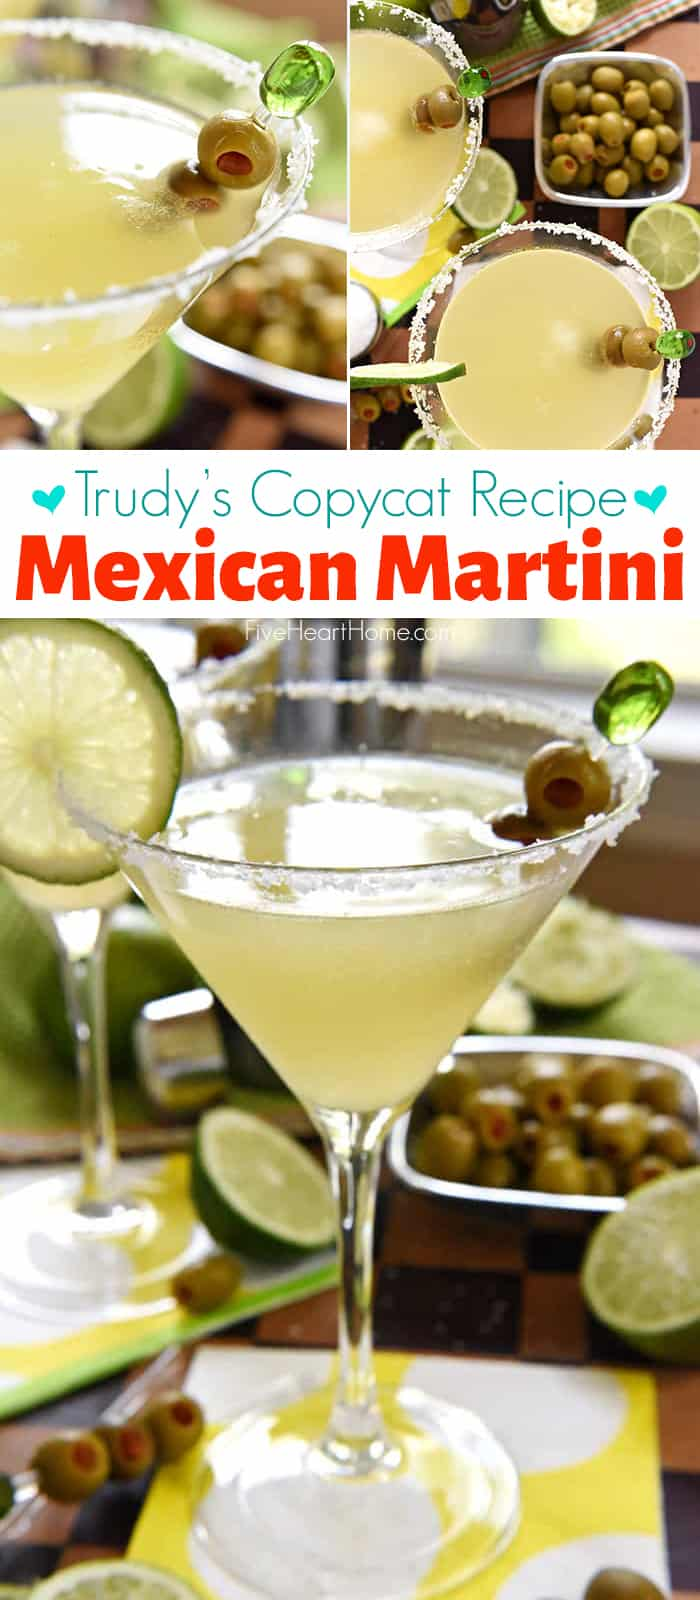 Trudy's Copycat Mexican Martini collage with text